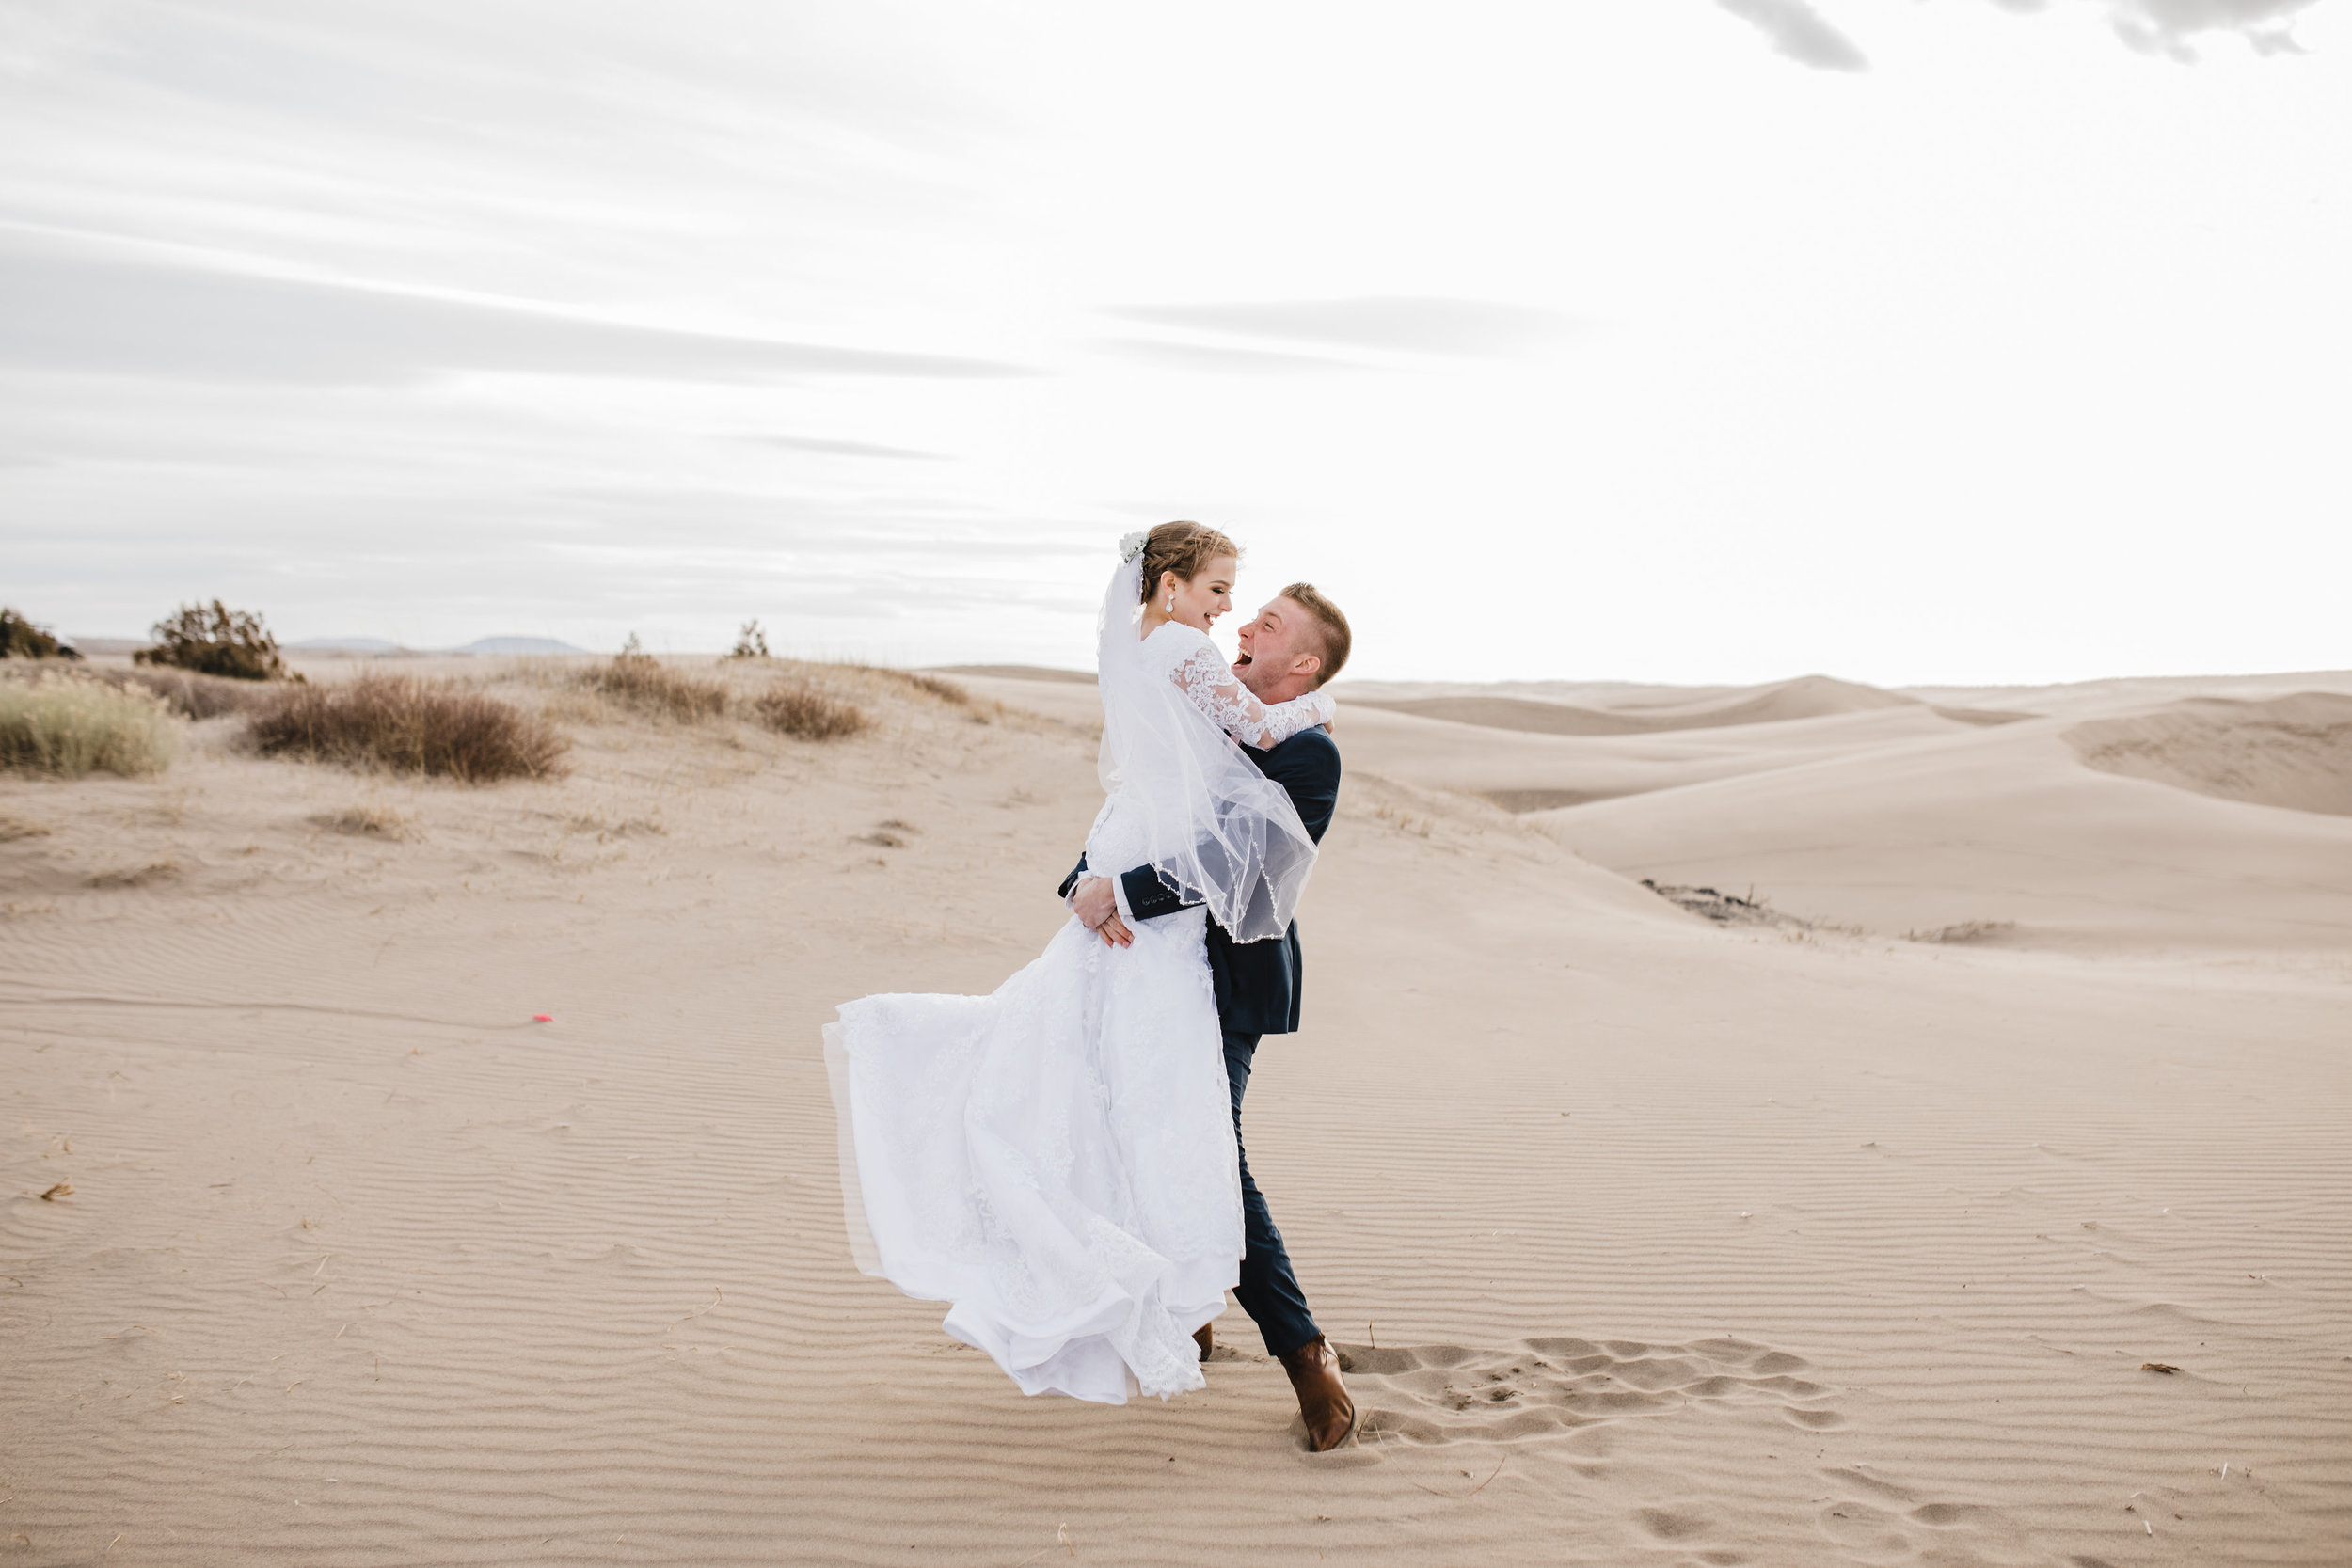 adventurous formals session professional wedding day photography boulder colorado calli richards wedding photographer available for travel all through colorado and the surrounding areas sand dudes wedding photos